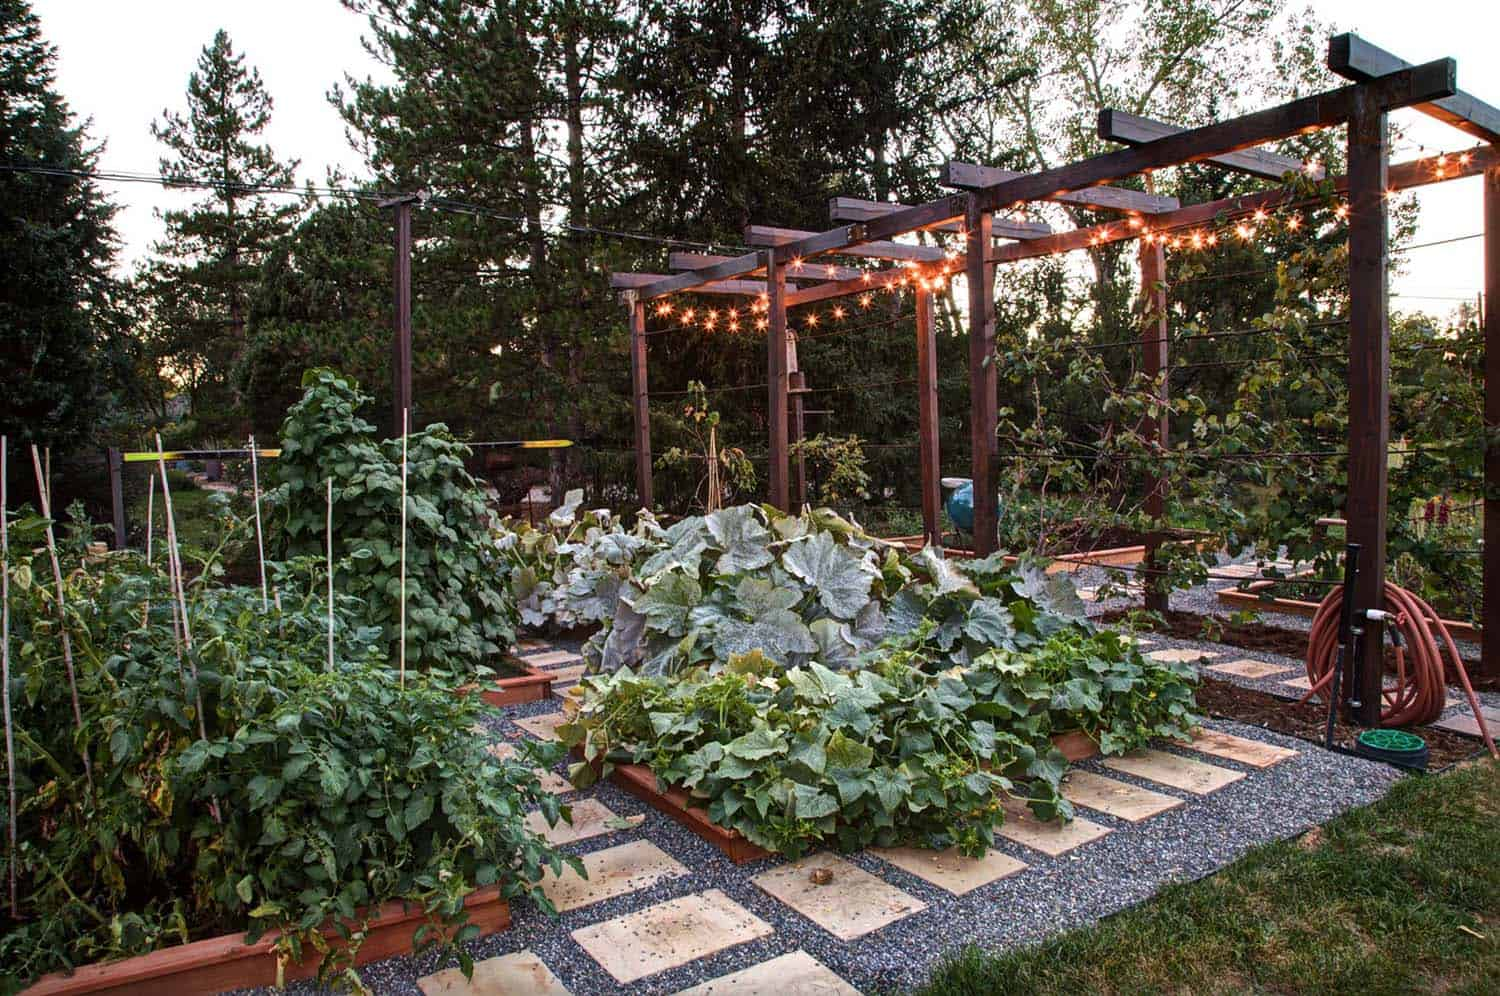 30 Amazing Ideas For Growing A Vegetable Garden In Your ... on Outdoor Vegetable Garden Ideas id=95649